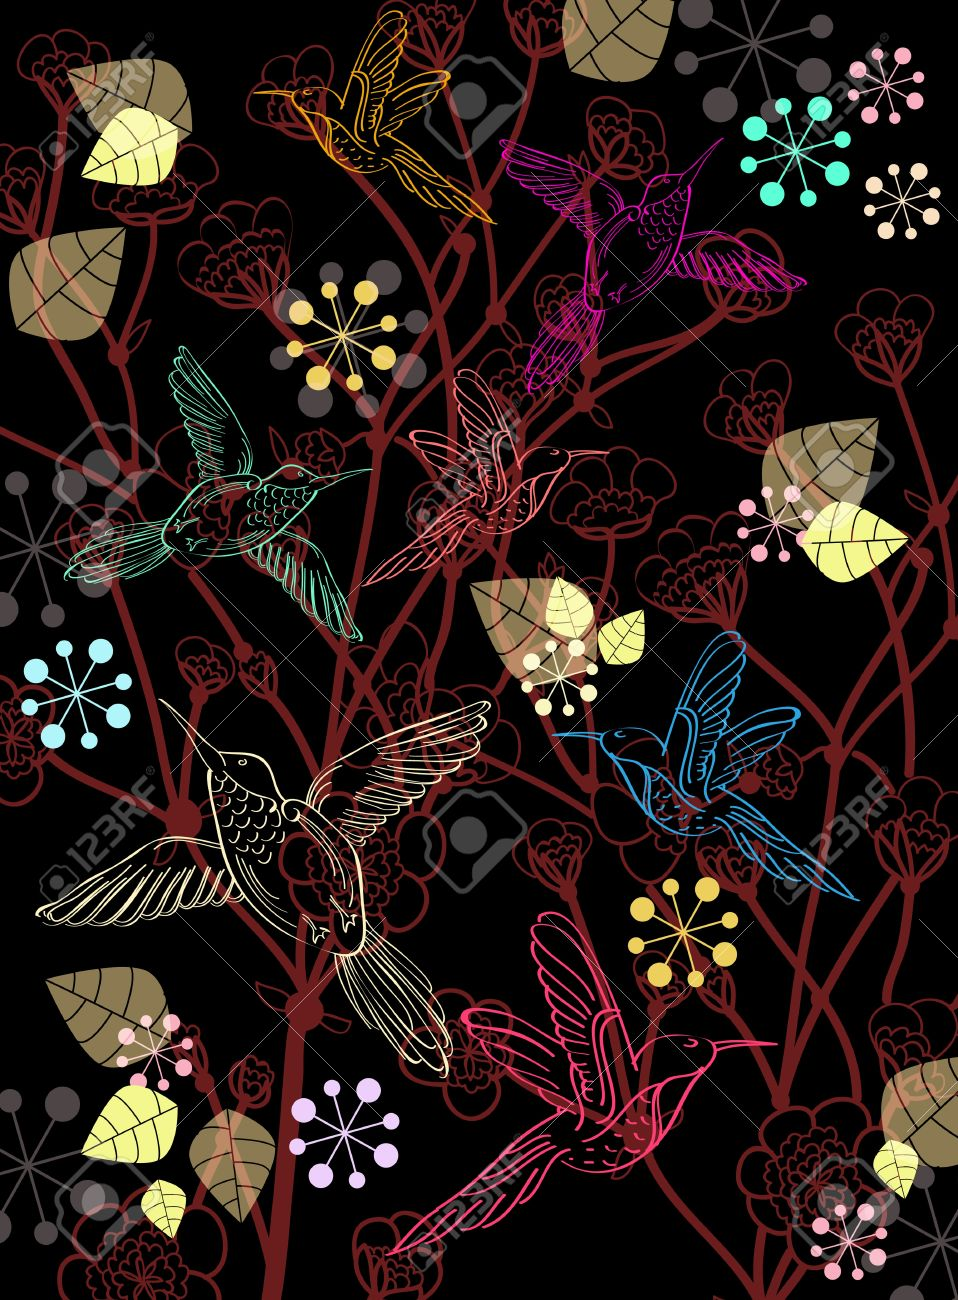 Beautiful Dark Floral Background With Birds Illustration Royalty